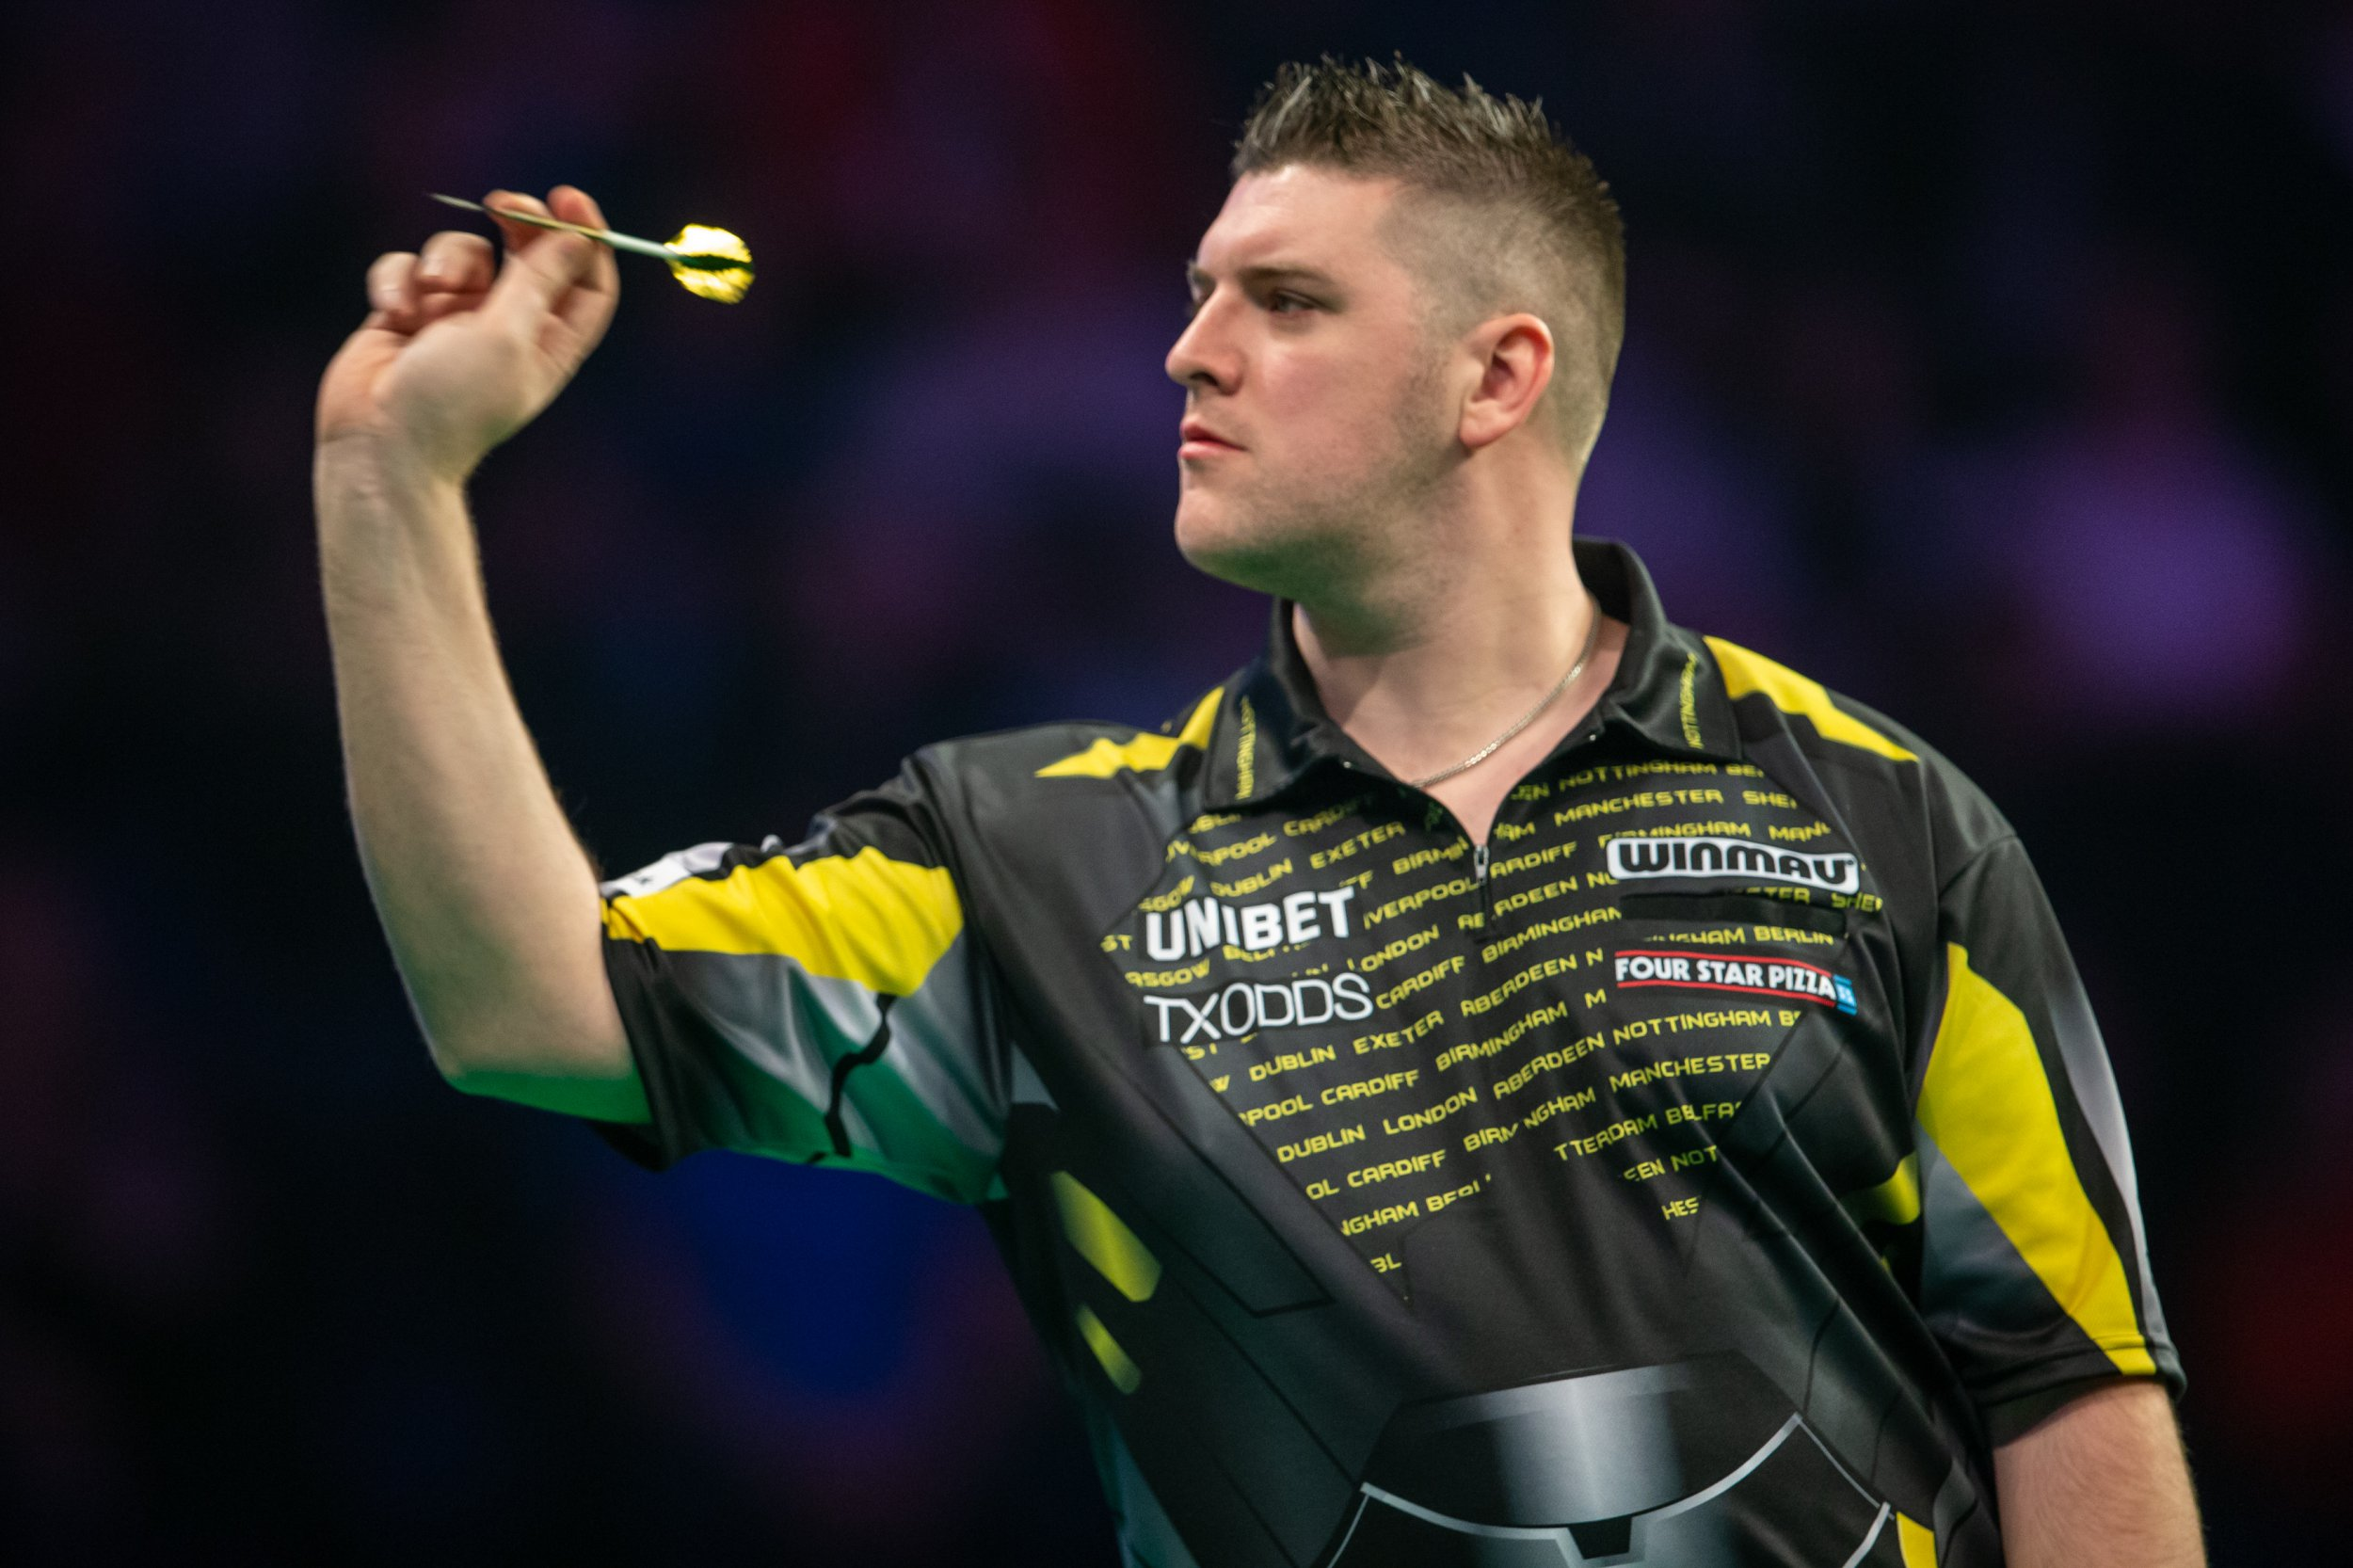 Darts news: Daryl Gurney details grim crowd abuse at Premier League